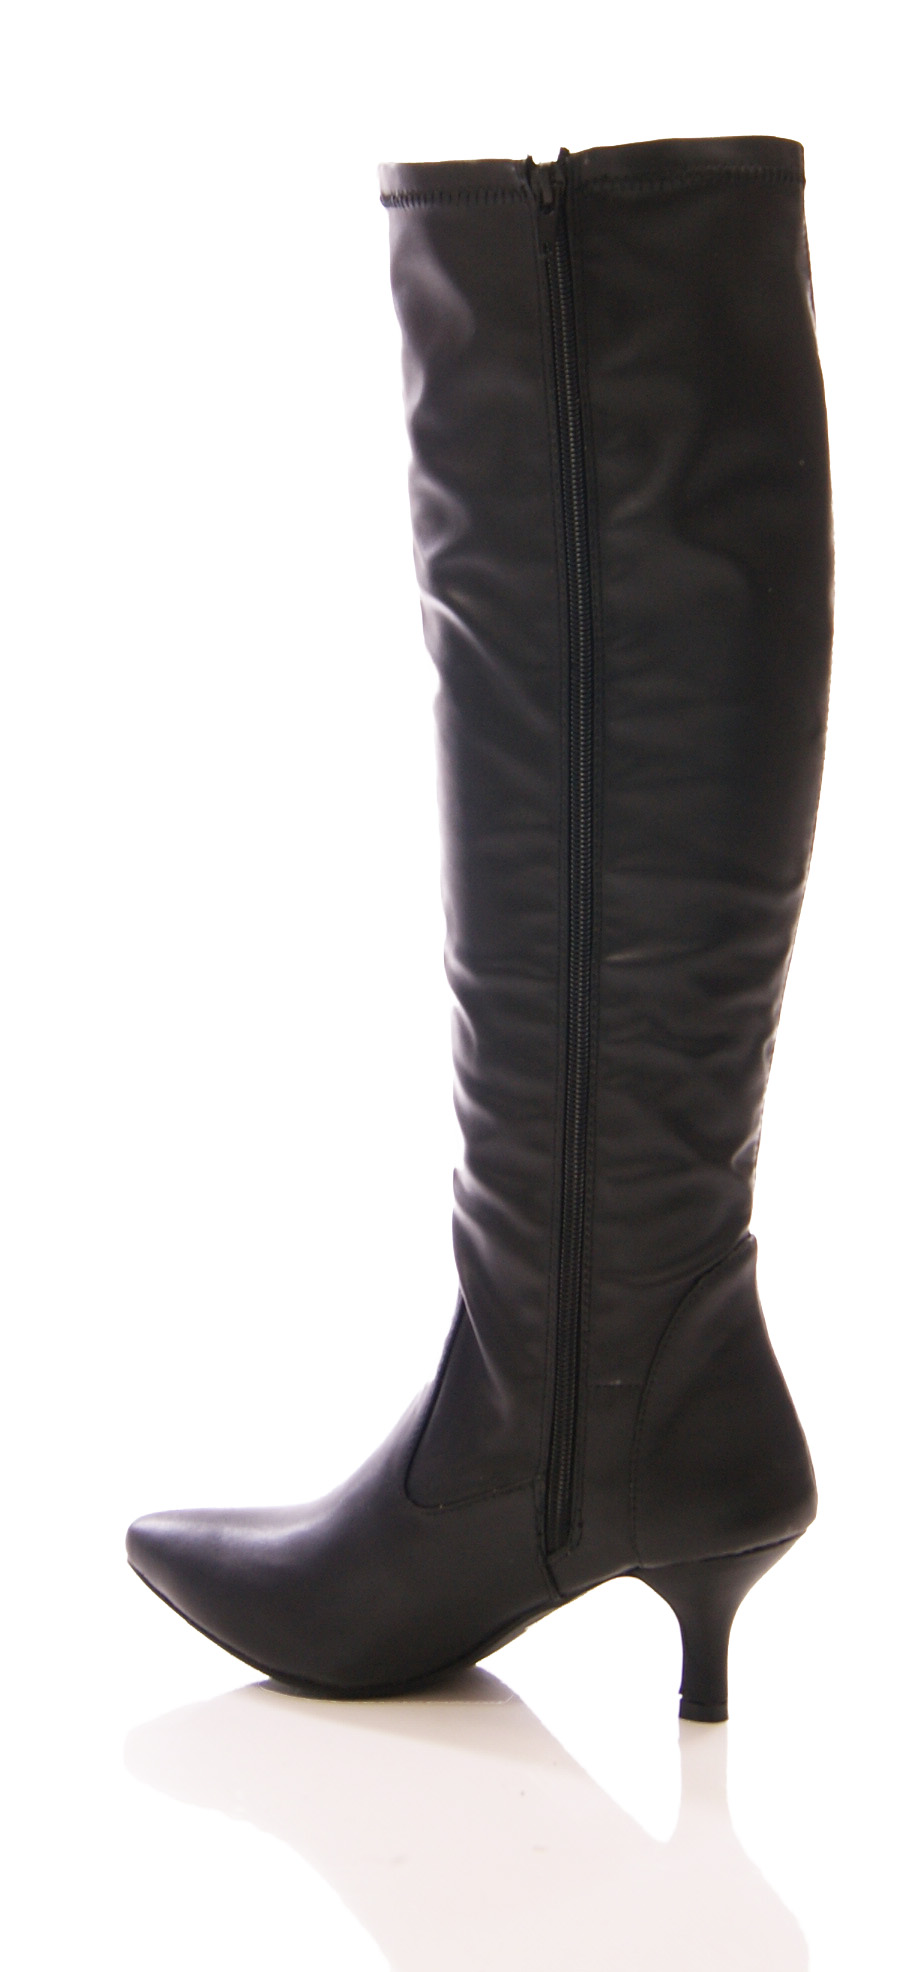 Free shipping BOTH ways on stretch boots, from our vast selection of styles. Fast delivery, and 24/7/ real-person service with a smile. Click or call